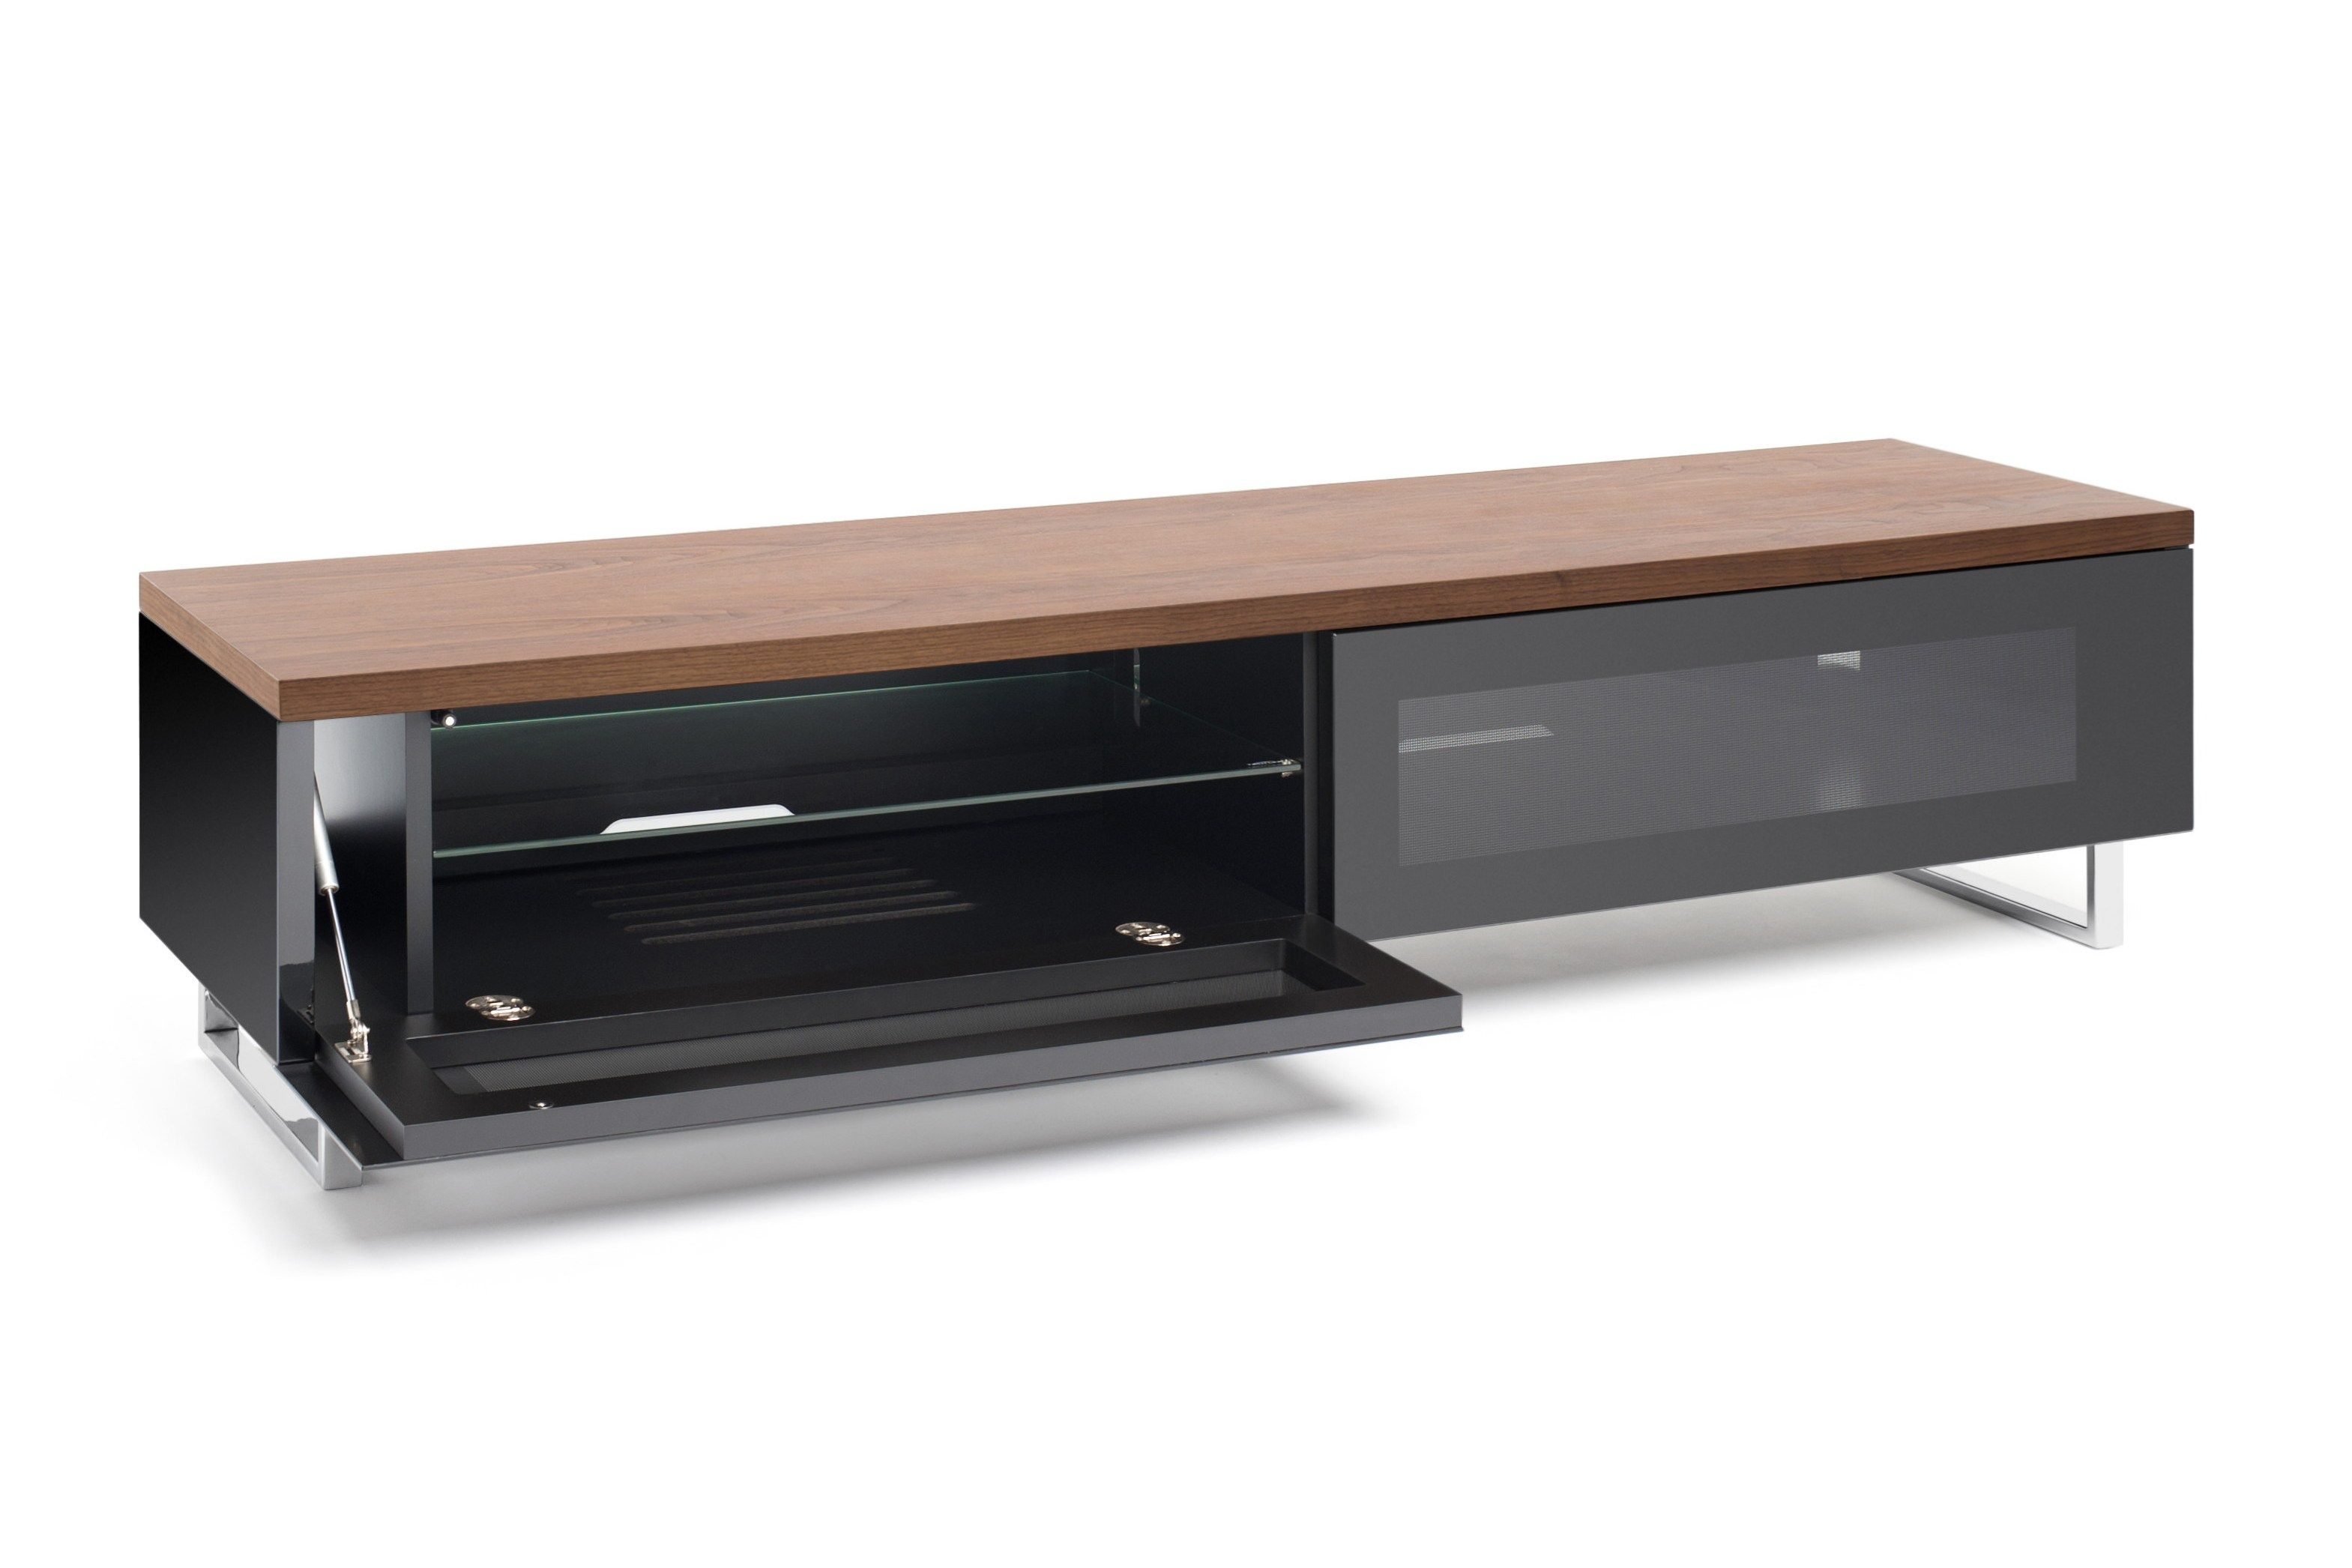 Low Profile Tv Stand | Media Room | Cabinet, Low Cabinet, Furniture With Regard To Draper 62 Inch Tv Stands (View 16 of 30)